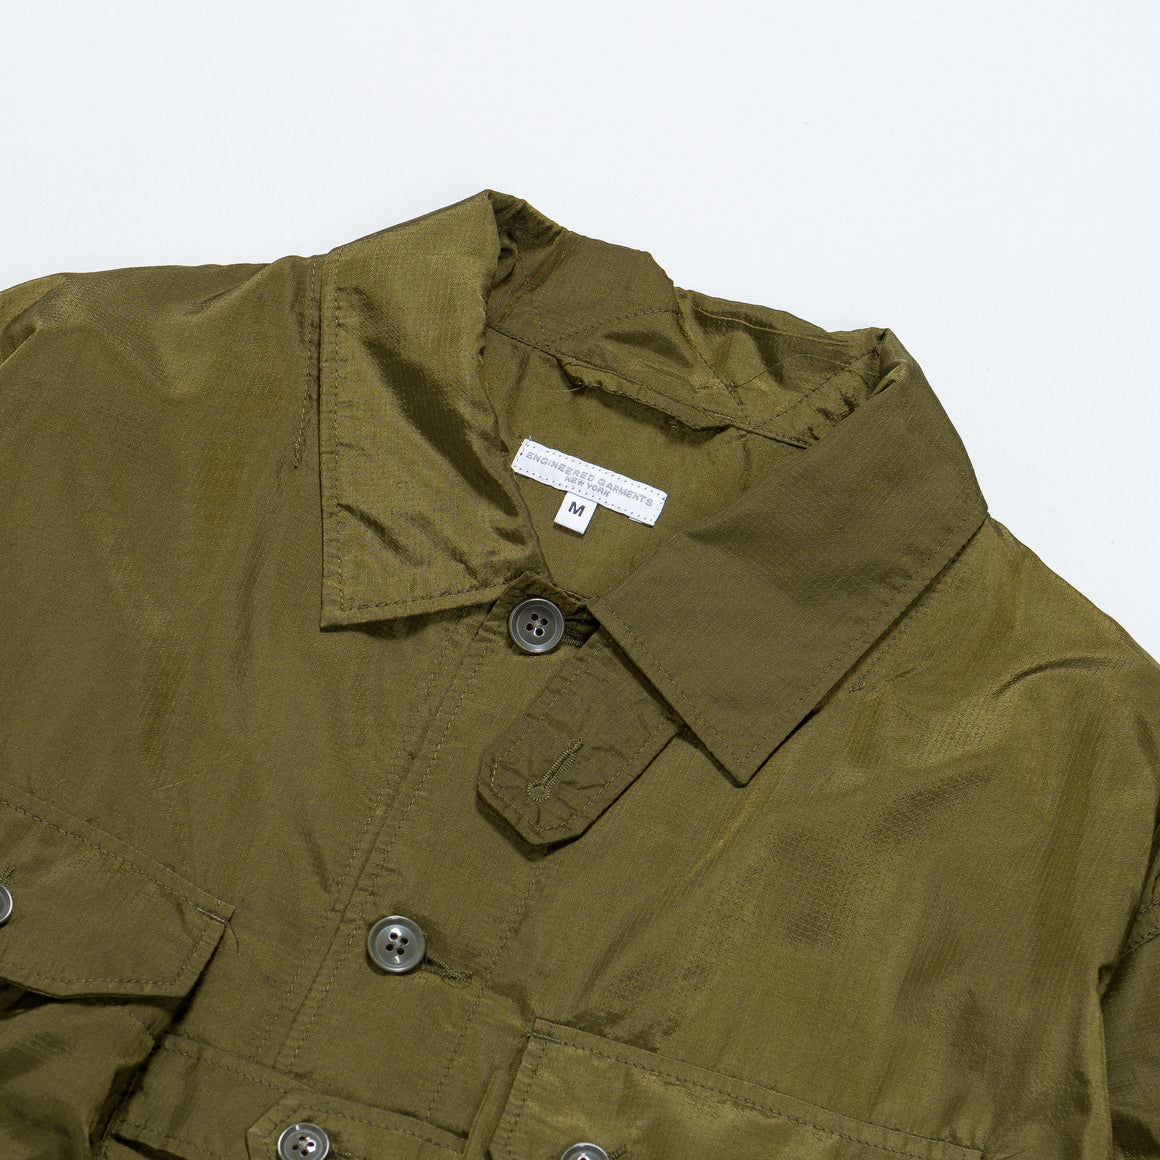 Engineered Garments - Explorer Shirt Jacket - Olive Nylon Micro Ripstop - Up There